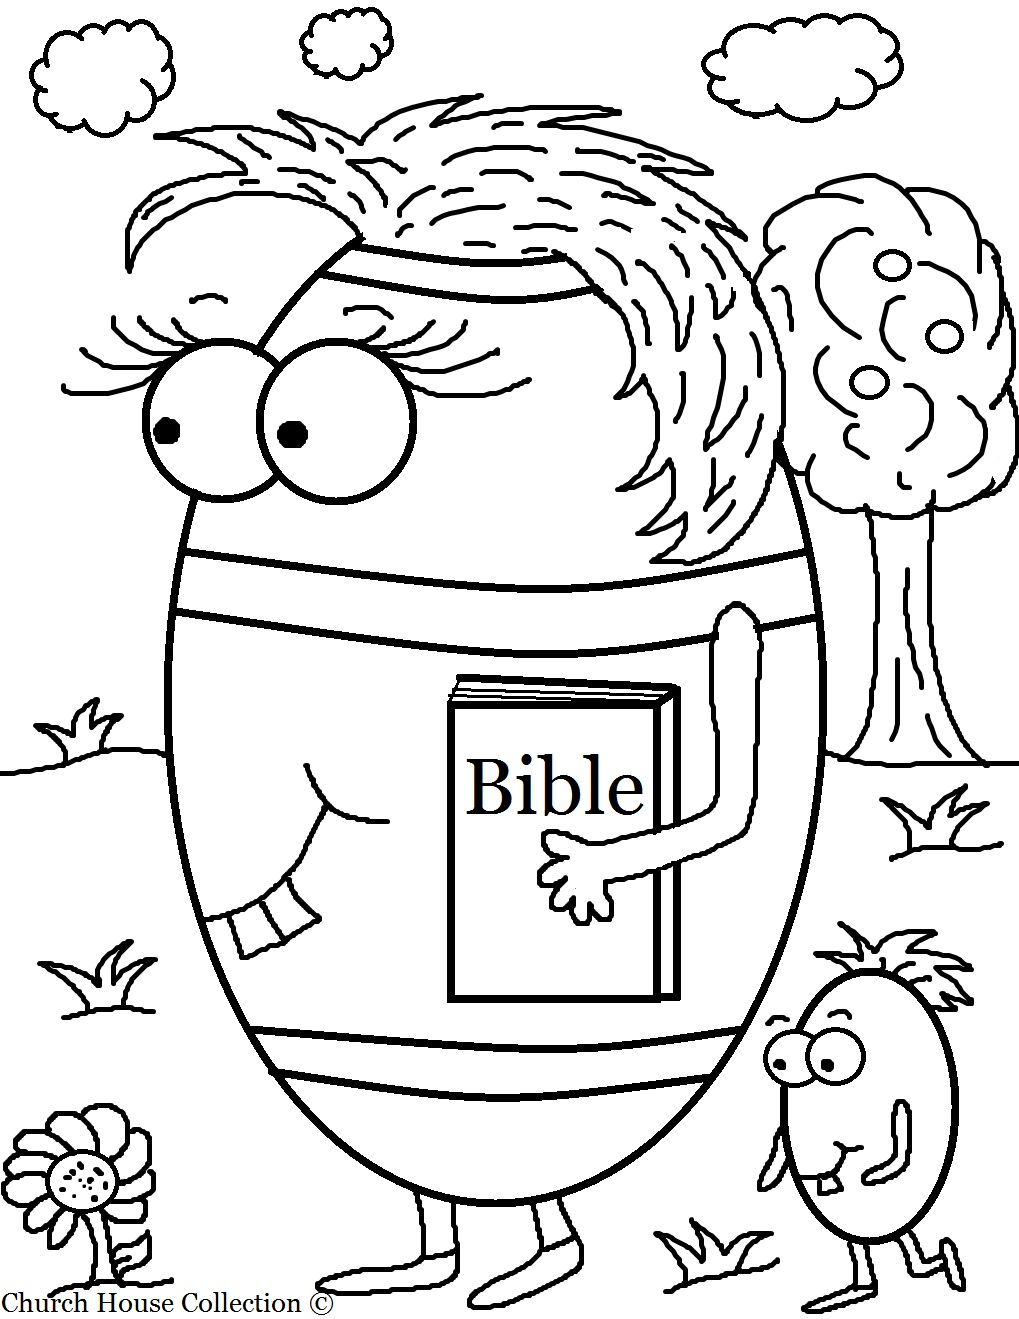 Top 25 Free Printable Easter Egg Coloring Pages Online - easter egg printable coloring pages